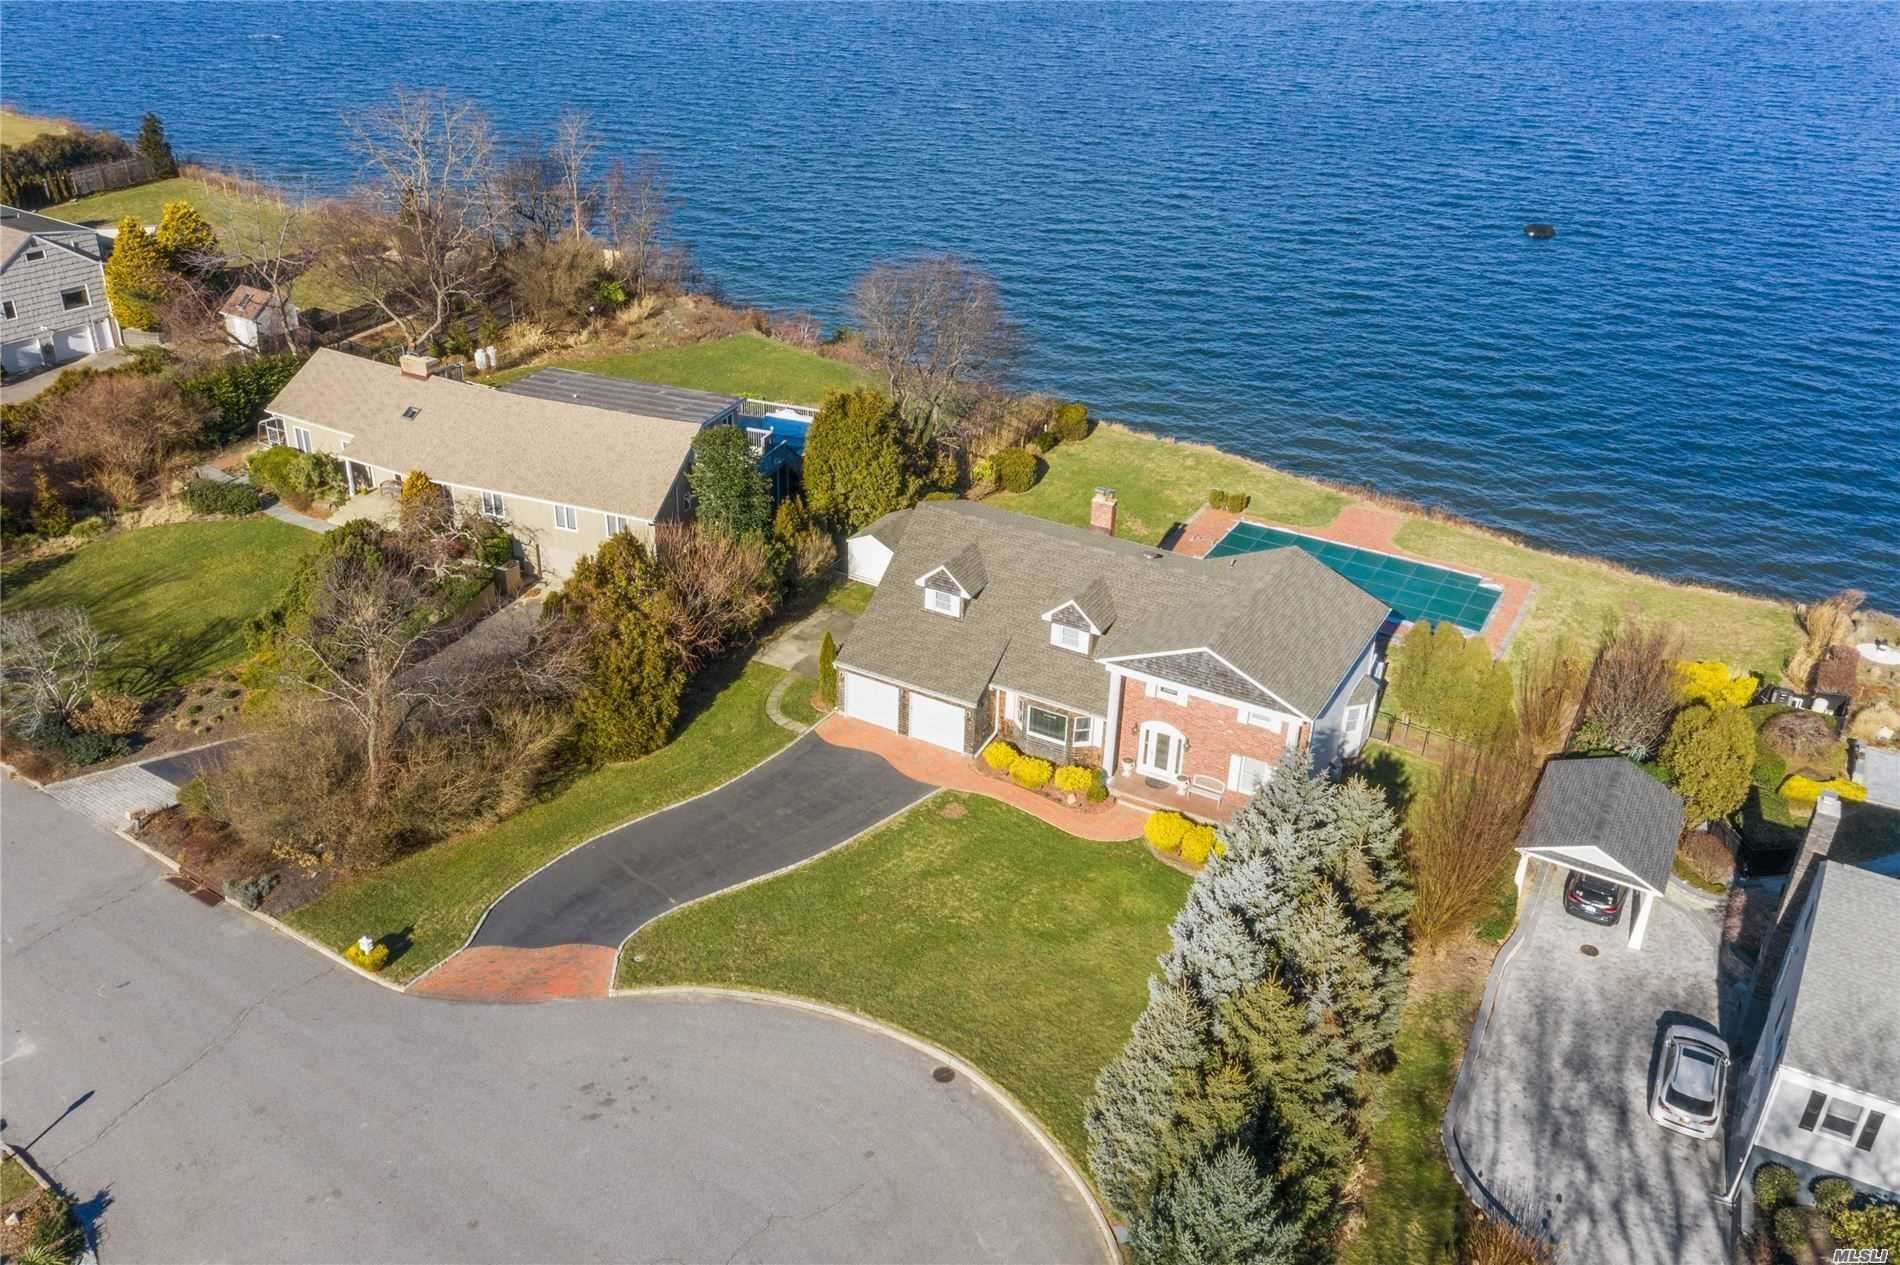 9 Seacliff Lane, Miller Place, NY 11764 - MLS#: 3215996